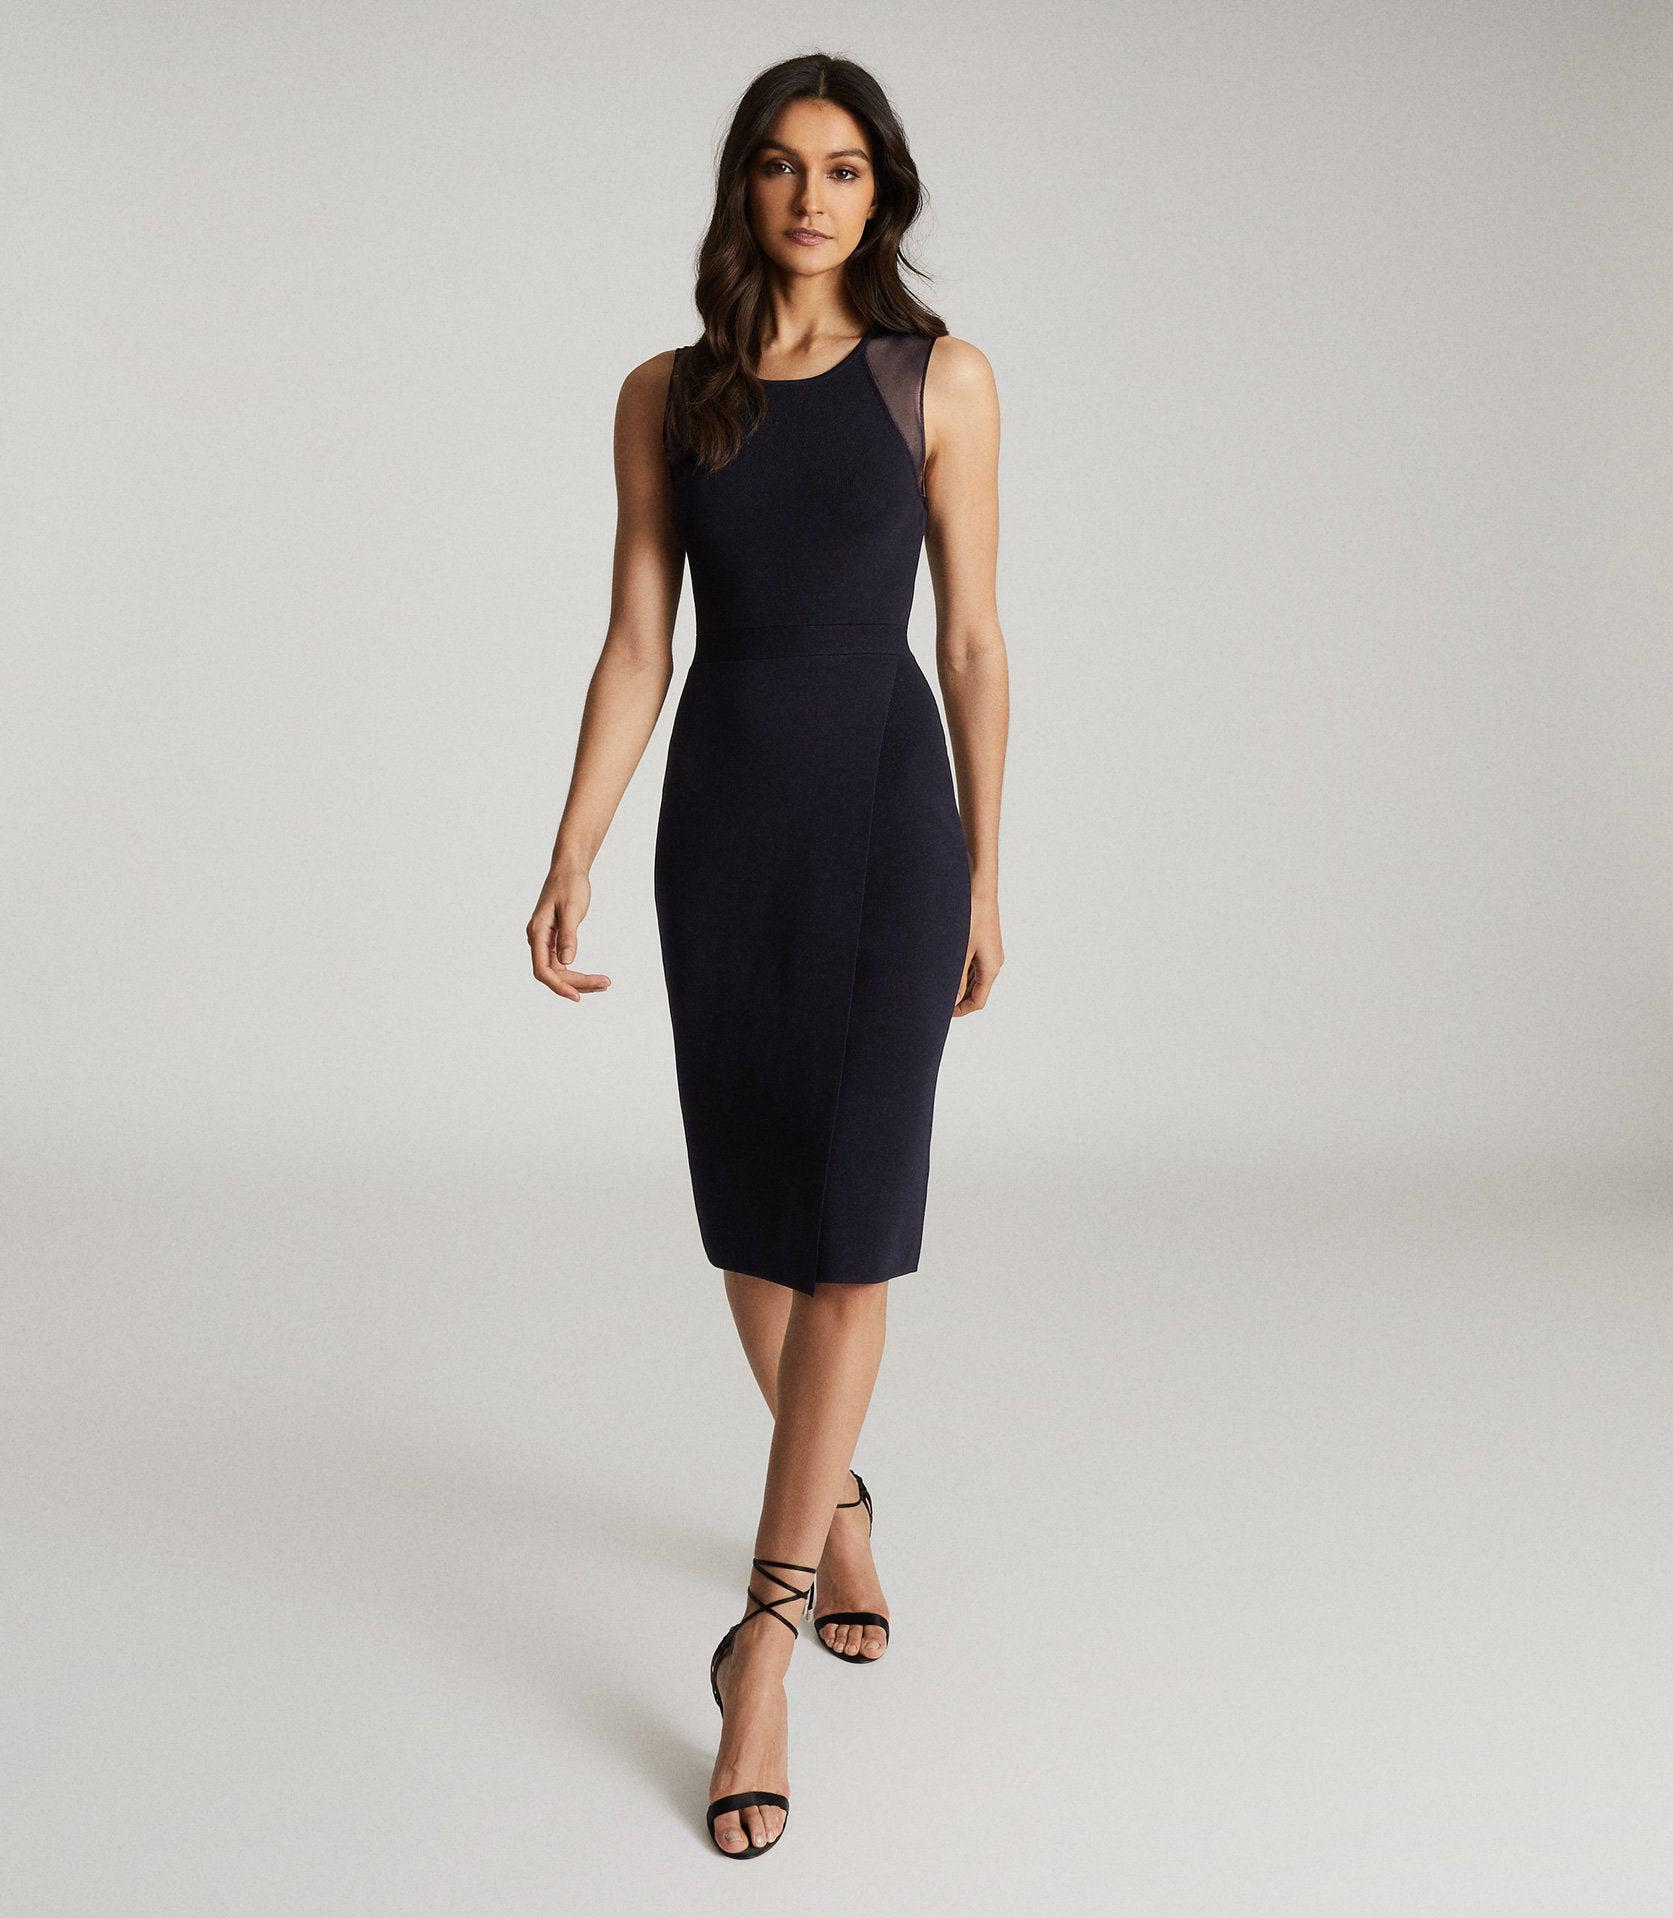 LEILA - KNITTED BODYCON DRESS